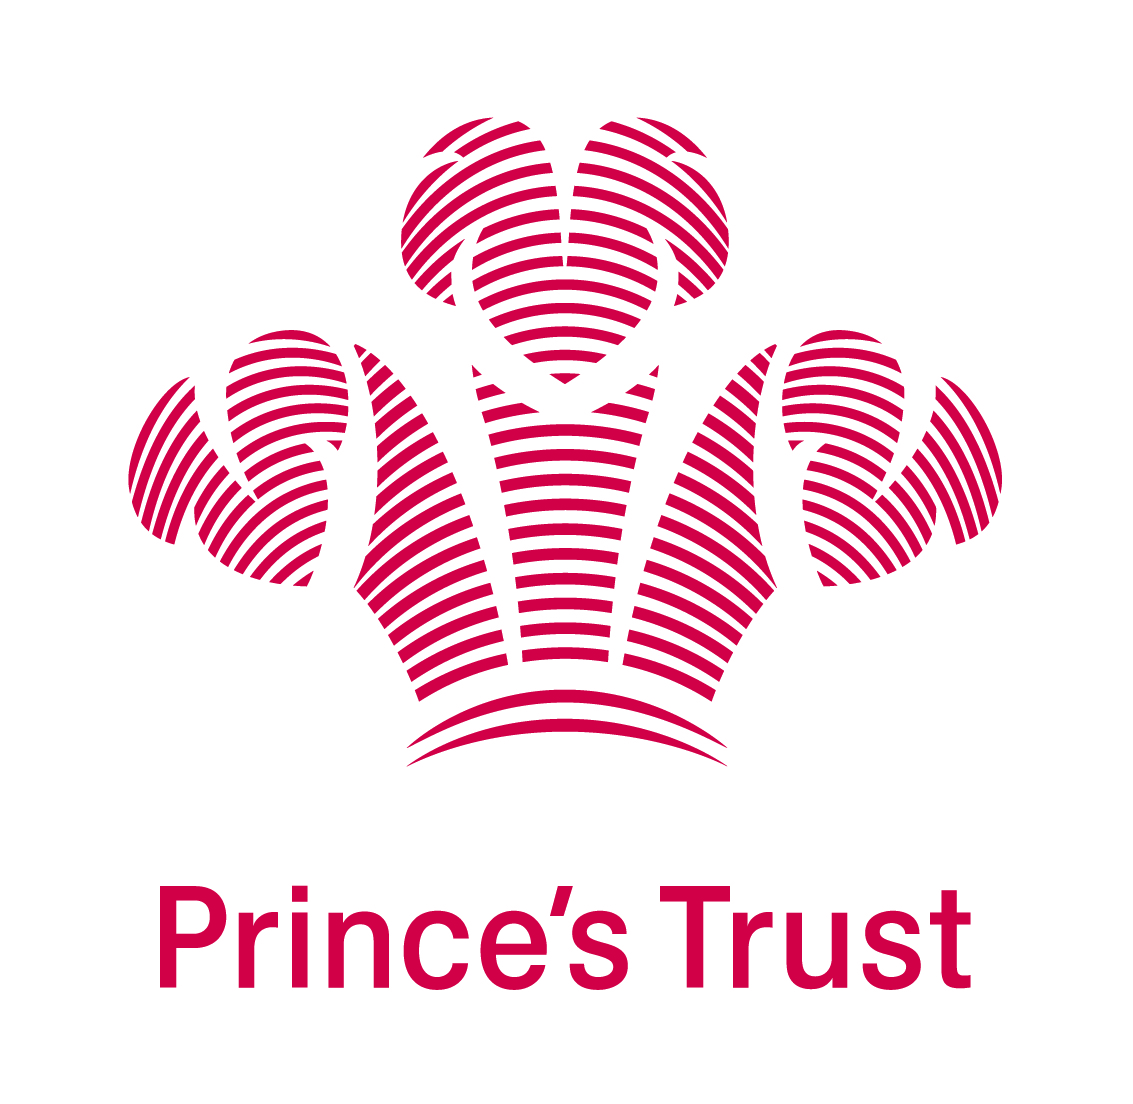 Logo of Prince's Trust charity